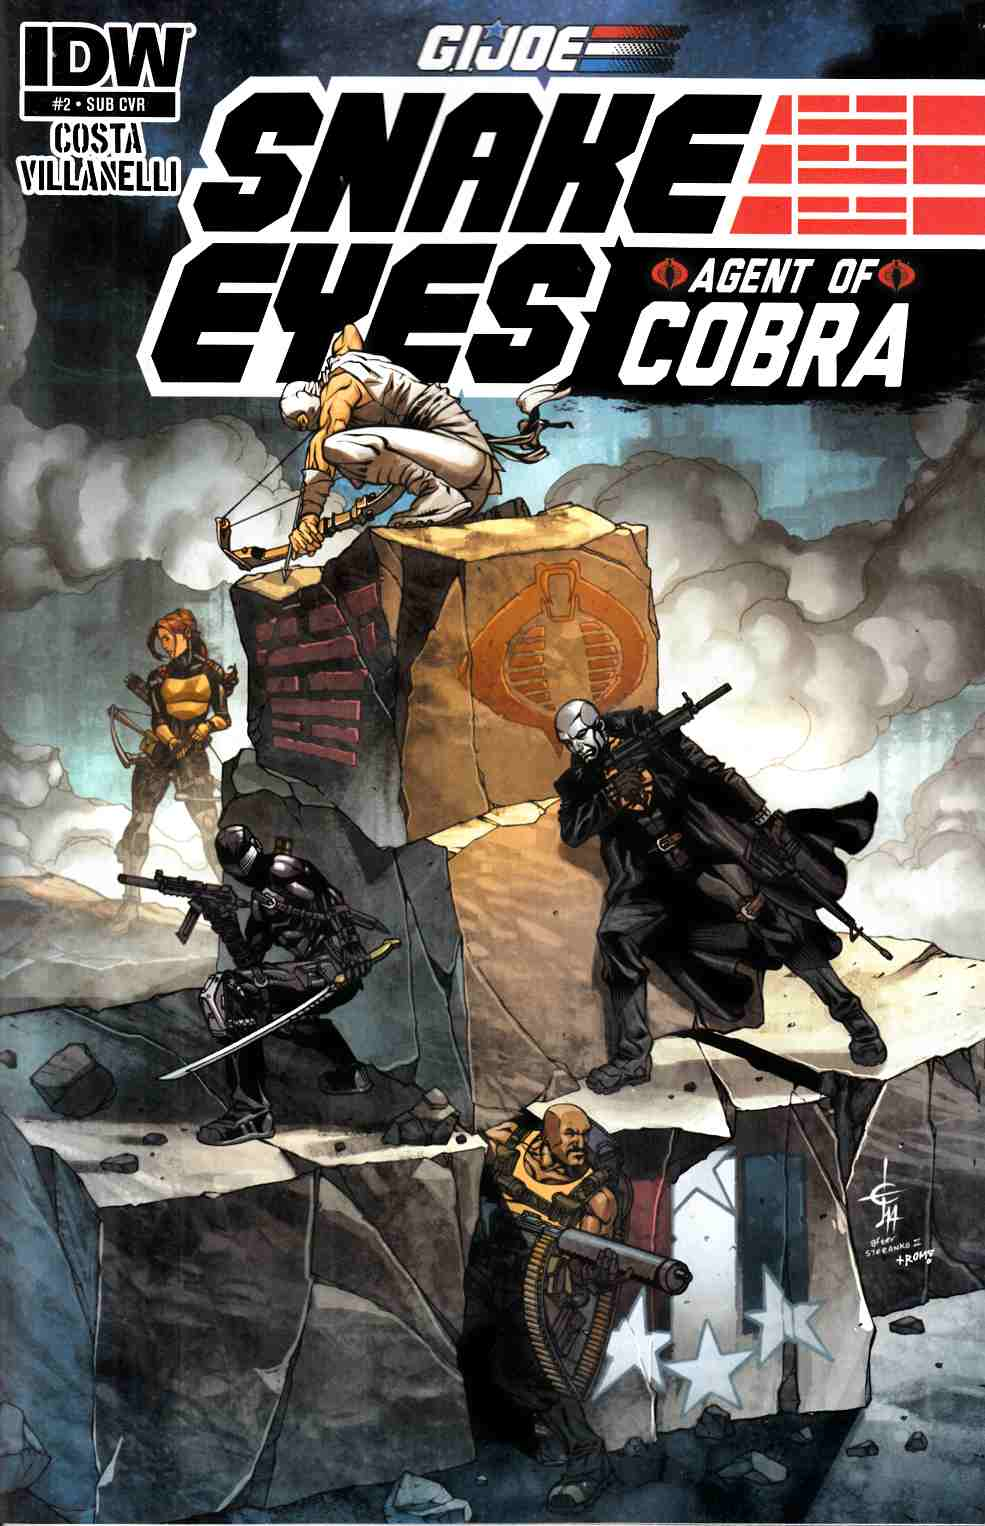 GI Joe Snake Eyes Agent of Cobra #2 Subscription Cover [IDW Comic]